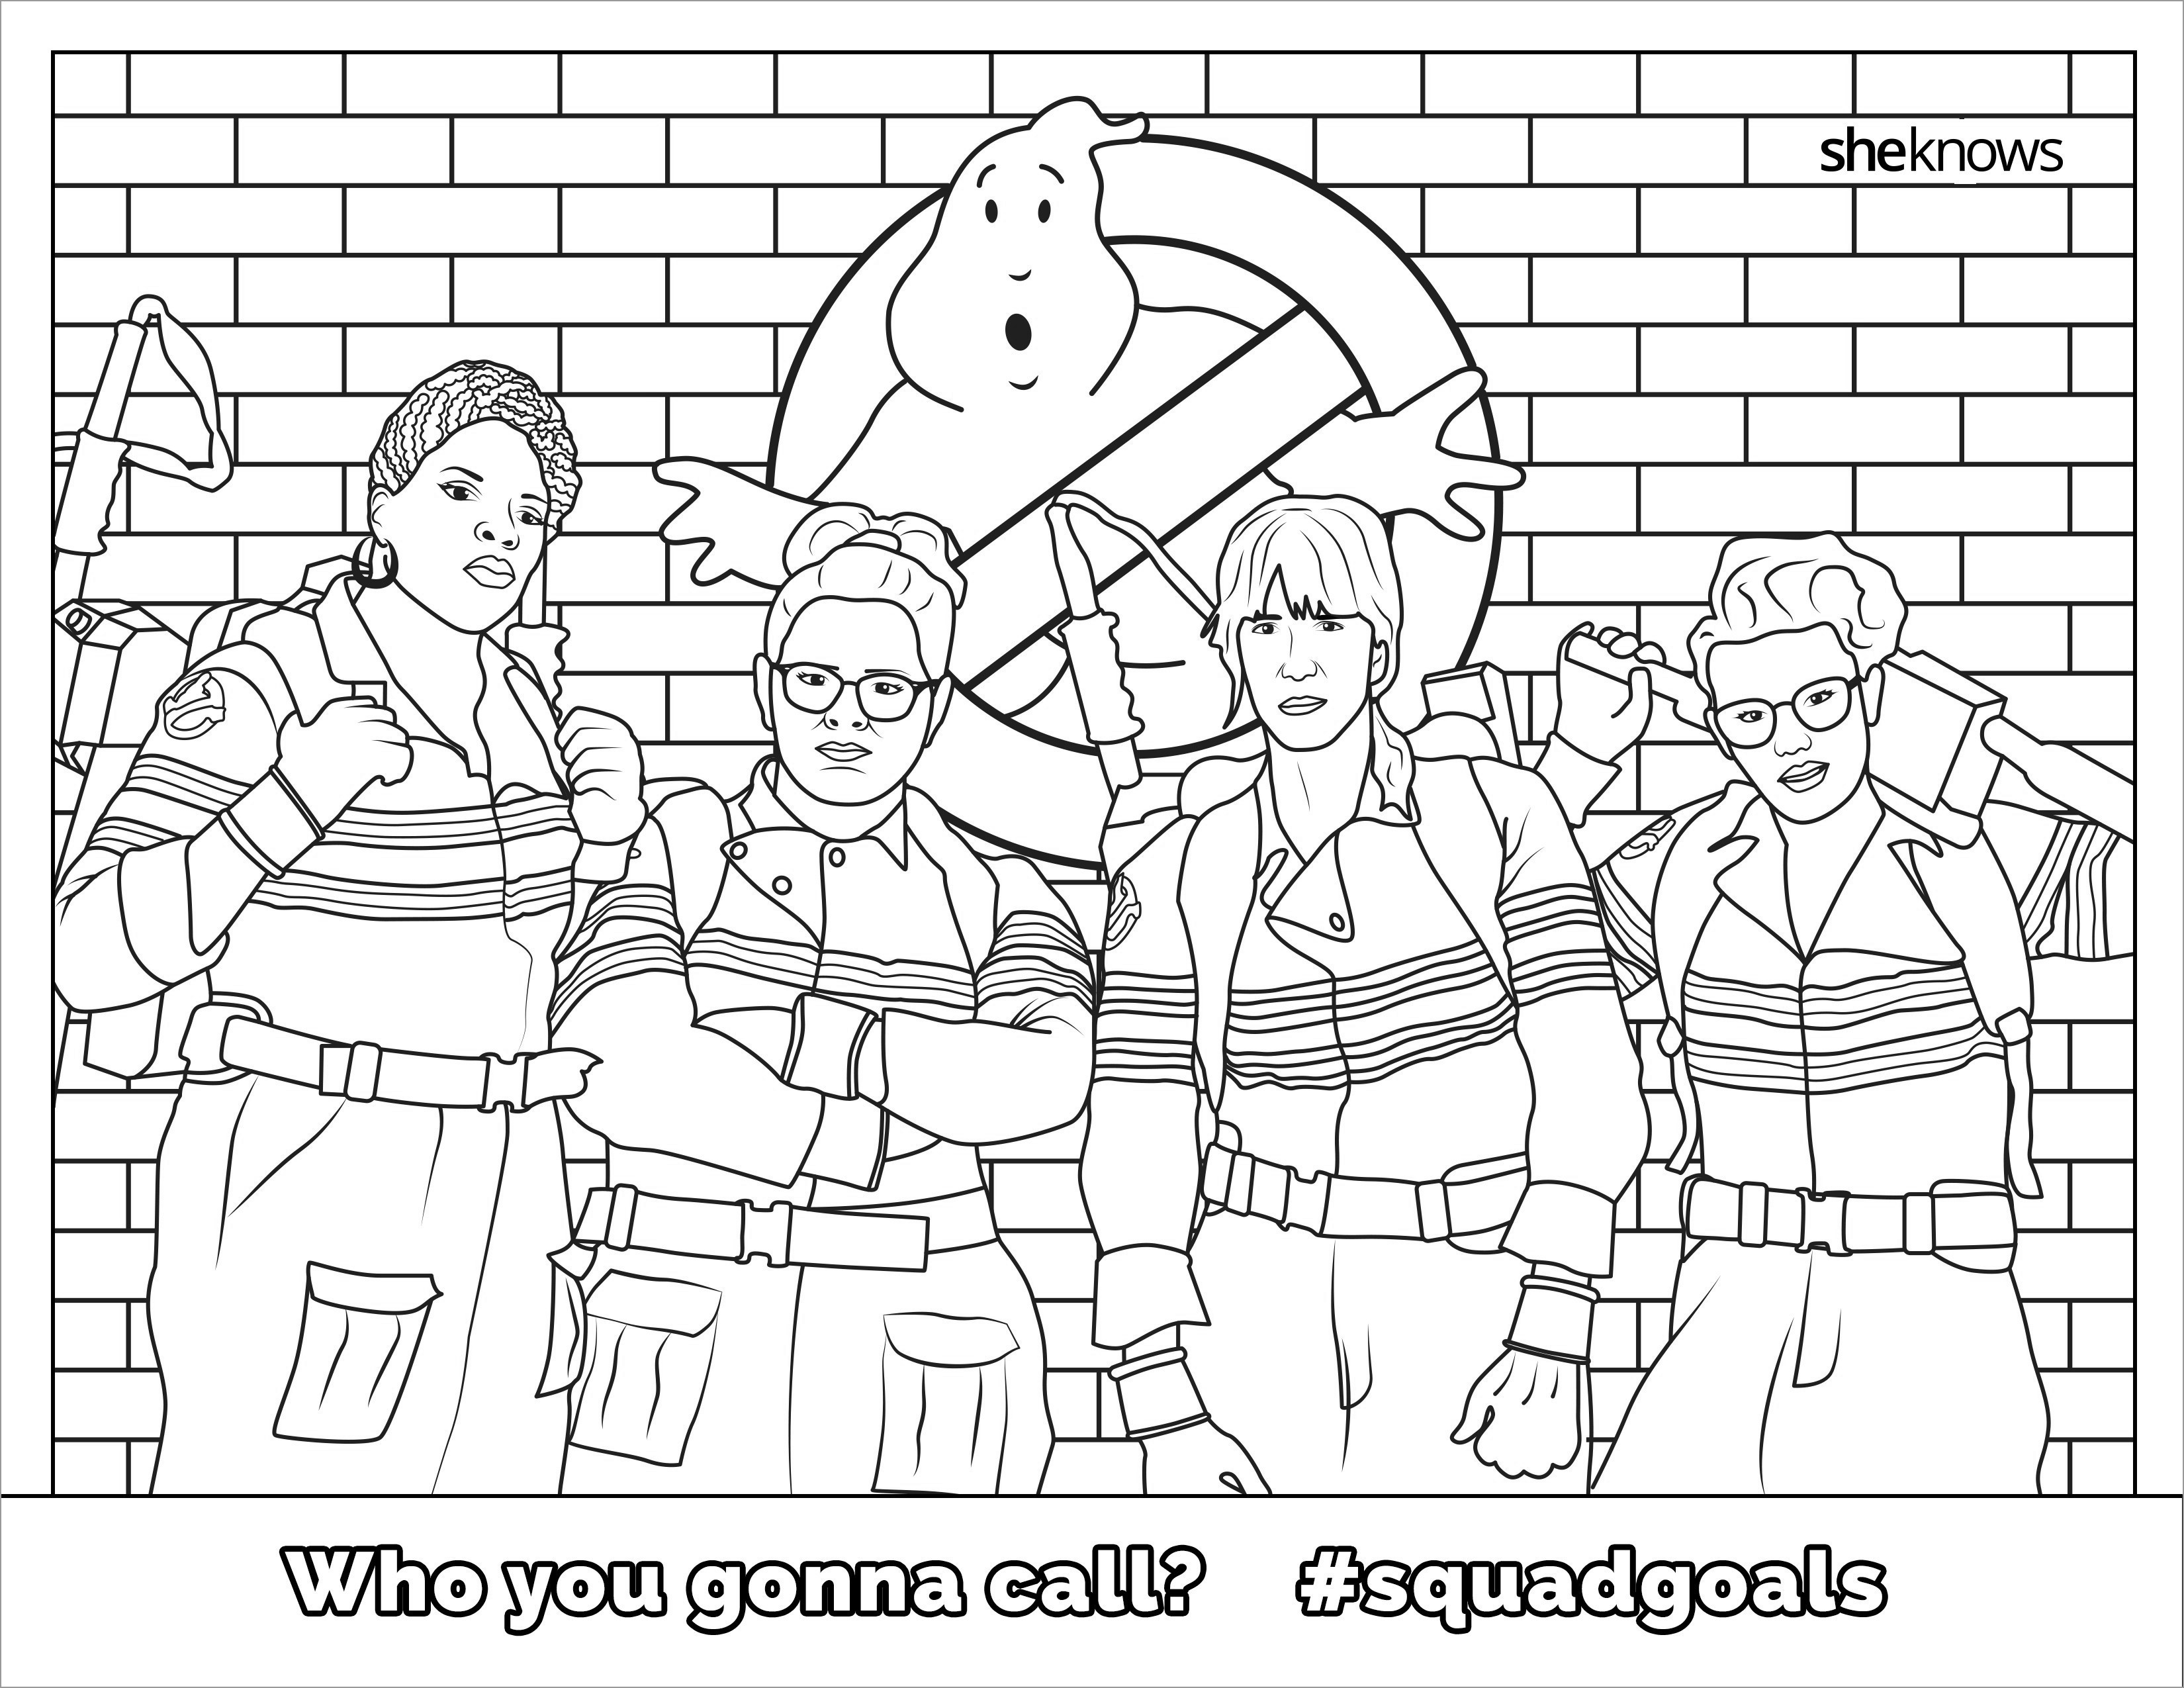 coloring ghostbusters ghostbusters coloring pages to download and print for free coloring ghostbusters